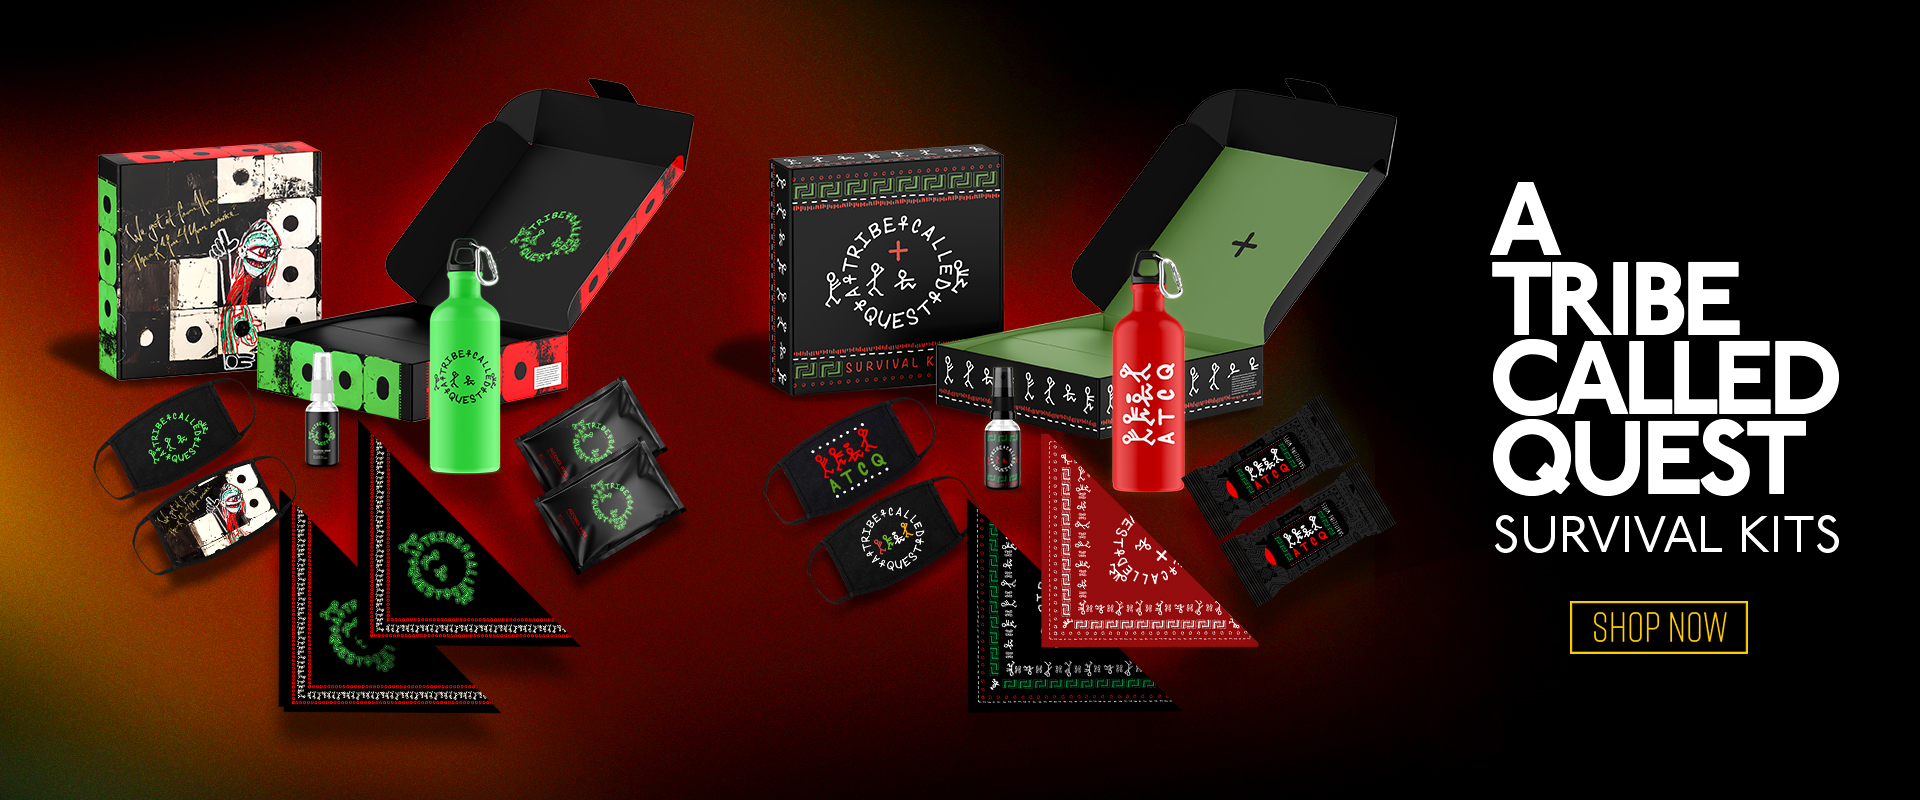 A Tribe Called Quest Survival Kit | Shop Now!